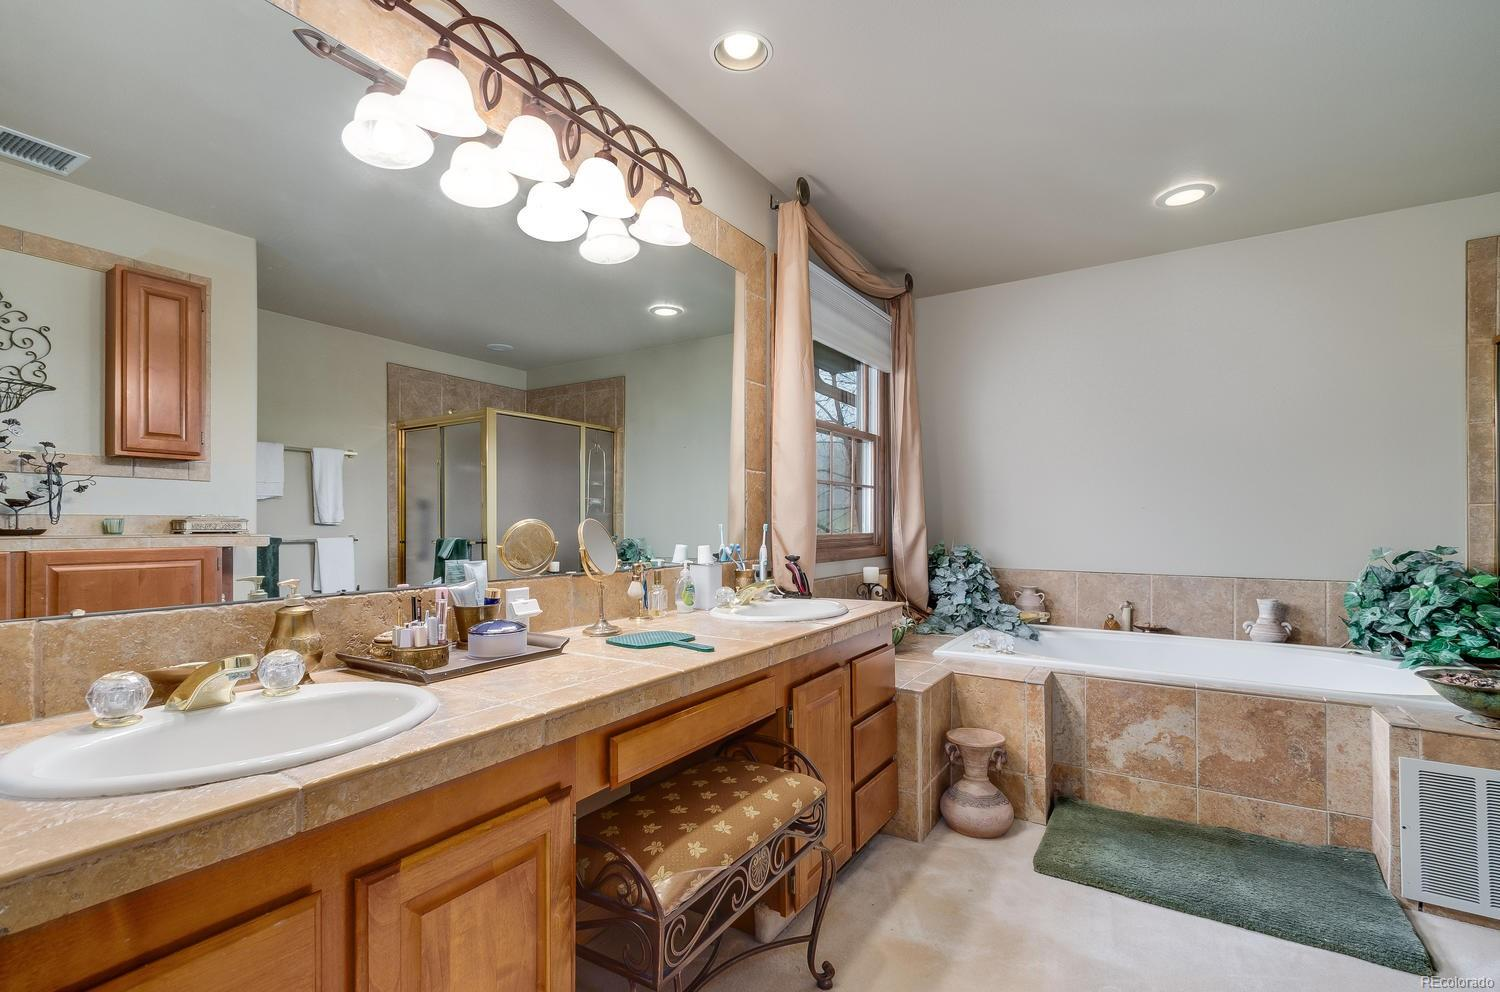 5-piece bath adds extra luxury to master suite